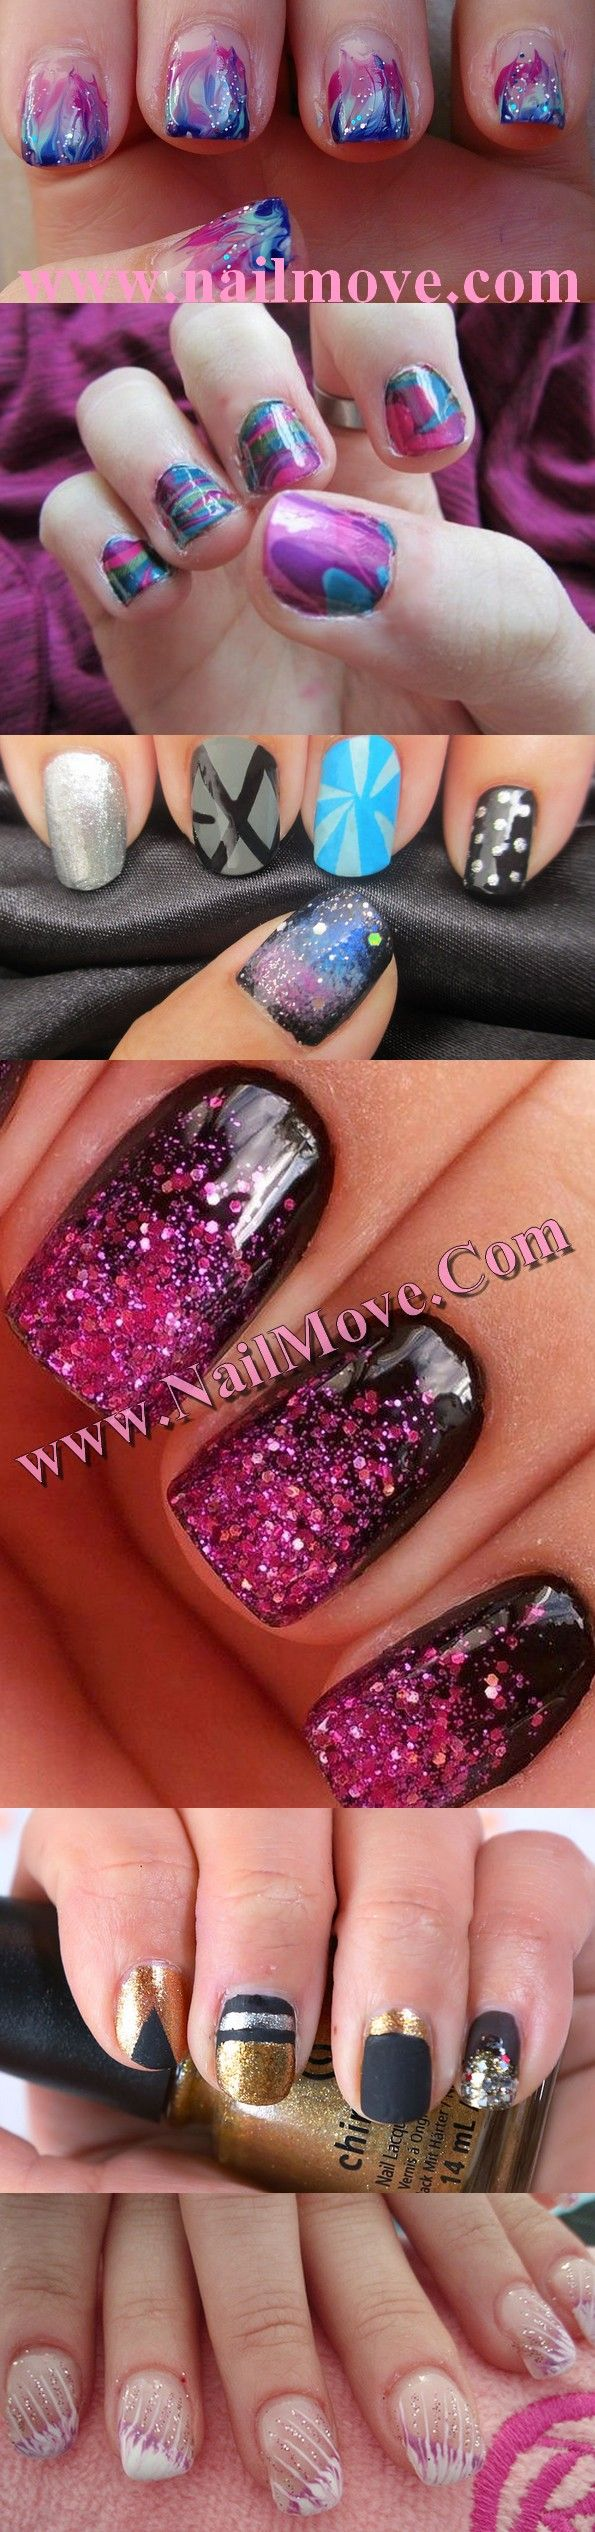 25 trending short nails 2014 ideas on pinterest trendy nails nail art at homenail art 2014nail art for short nails nail prinsesfo Images